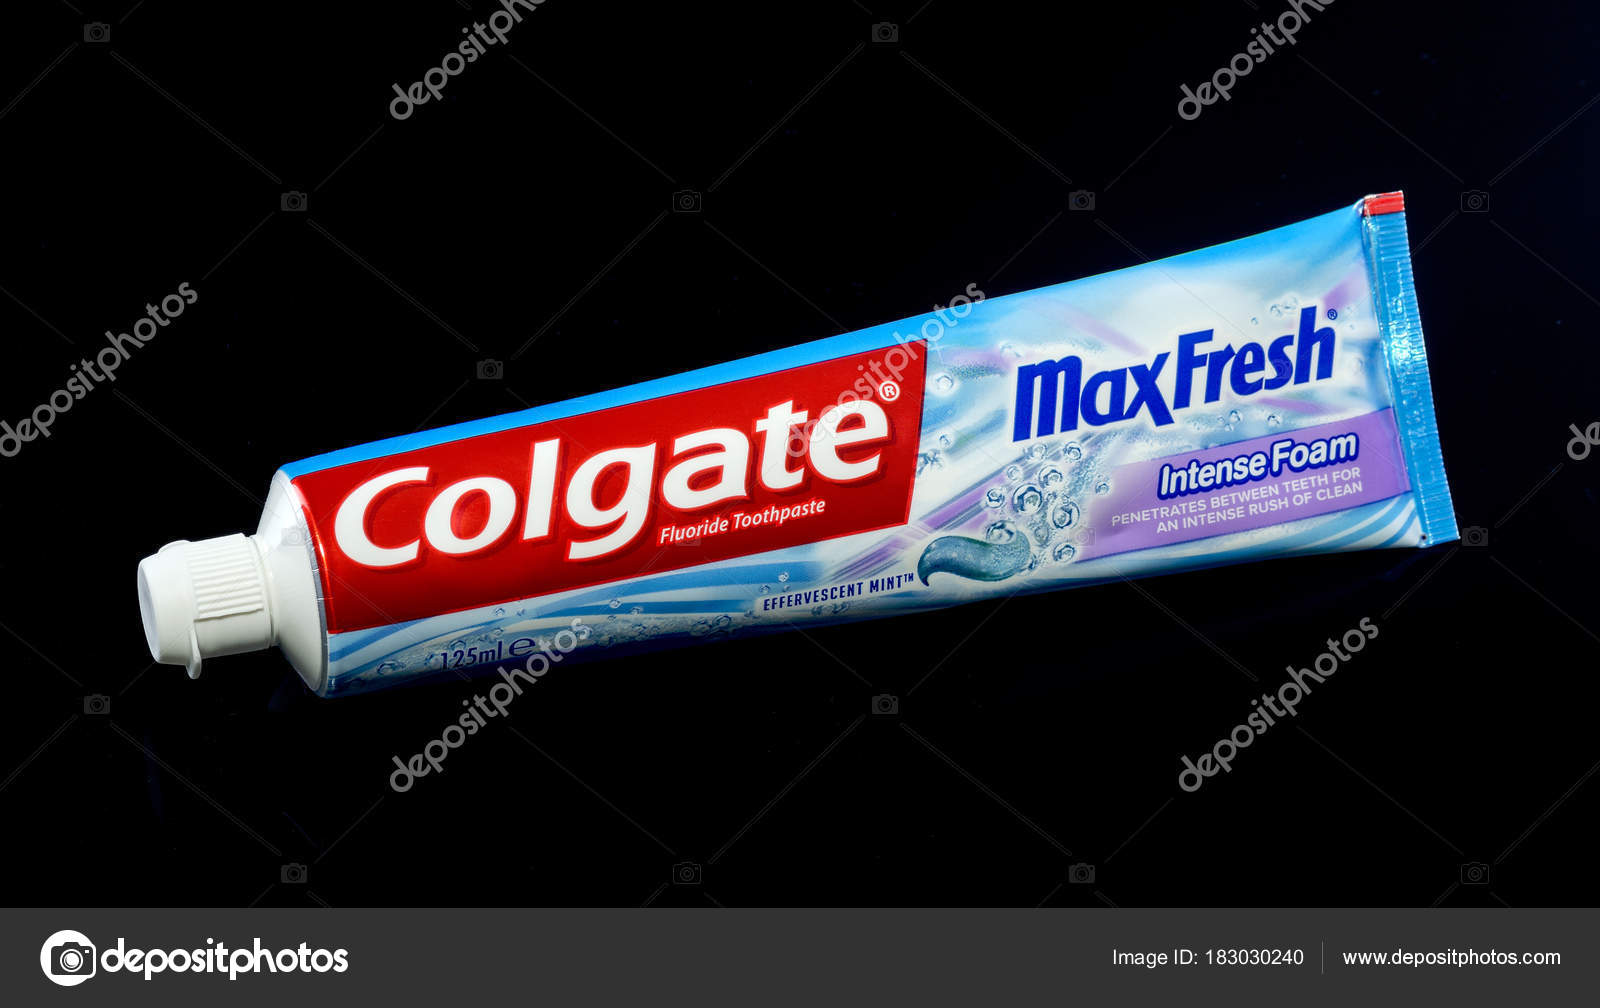 consumer products in china colgate toothpaste Colgate is an umbrella brand principally used to purchase oral hygiene products such as toothpastes, toothbrushes, mouthwashes and dental floss manufactured by the american consumer-goods conglomerate colgate-palmolive, colgate oral hygiene products were first sold by the company in.